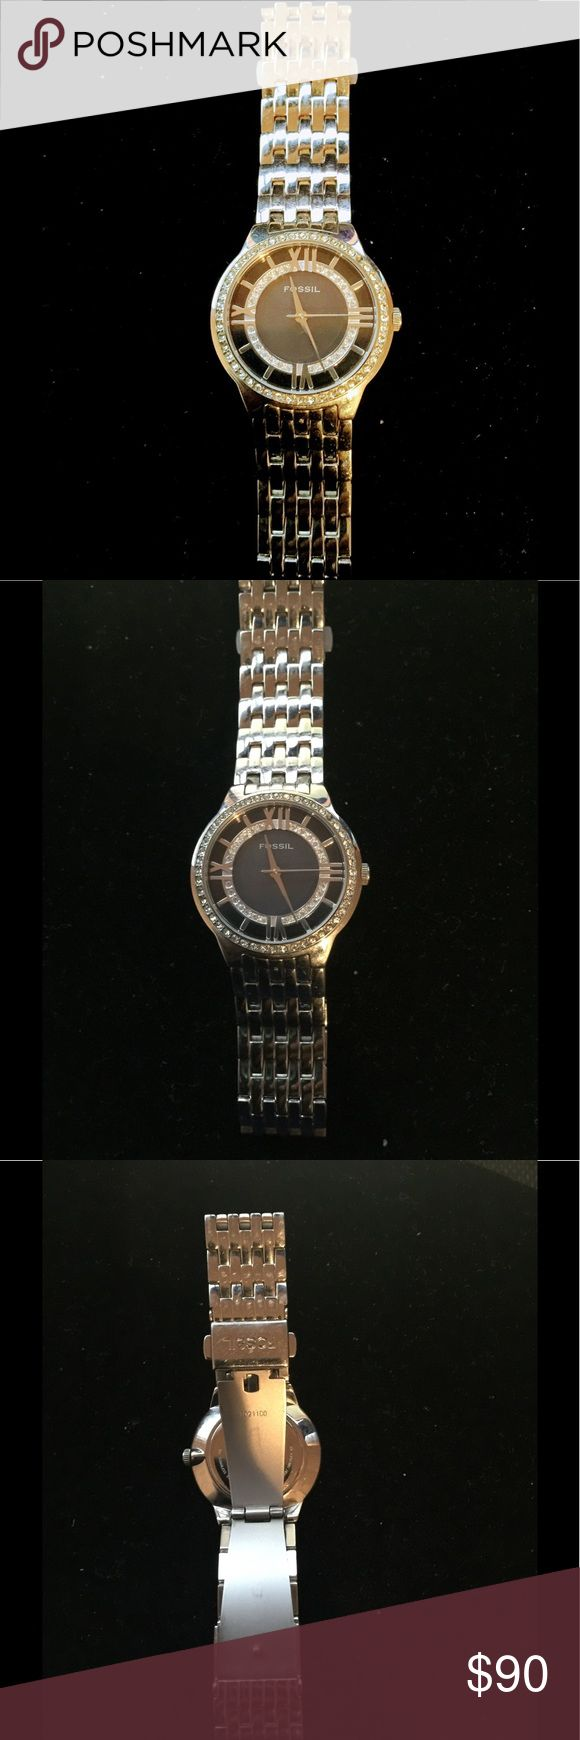 Women's Fossil Watch Beautiful Fossil watch that I had for a few years but never had the opportunity to wear. Missing a small diamond in the outer part of the face but barely noticeable. Needs new batteries but worked well past time I wore it. Fossil Accessories Watches